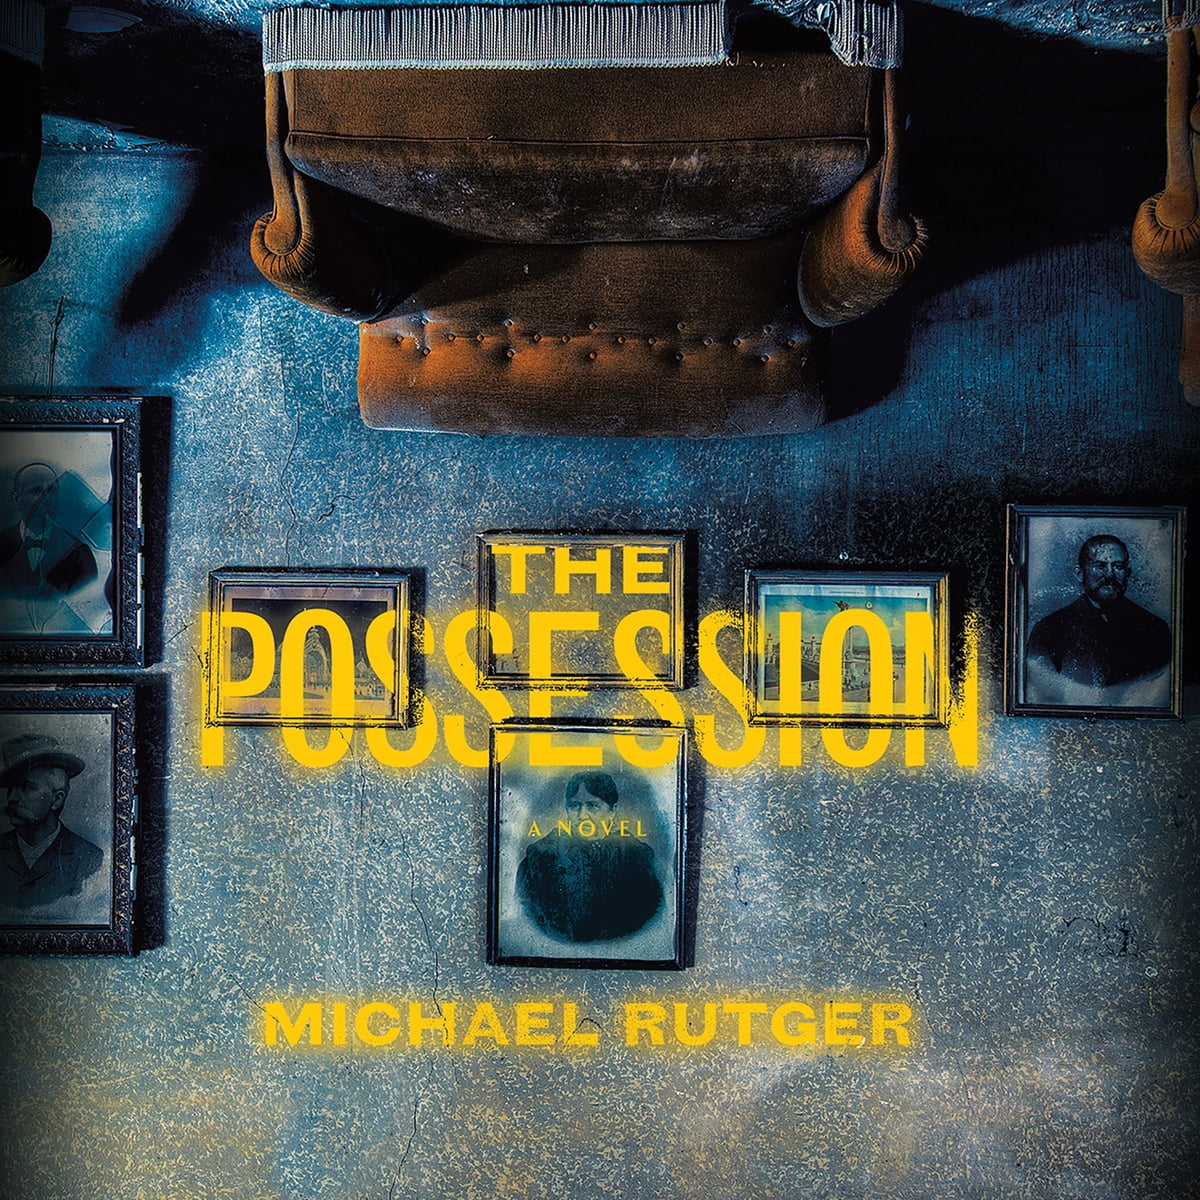 The Possession - Michael Rutger